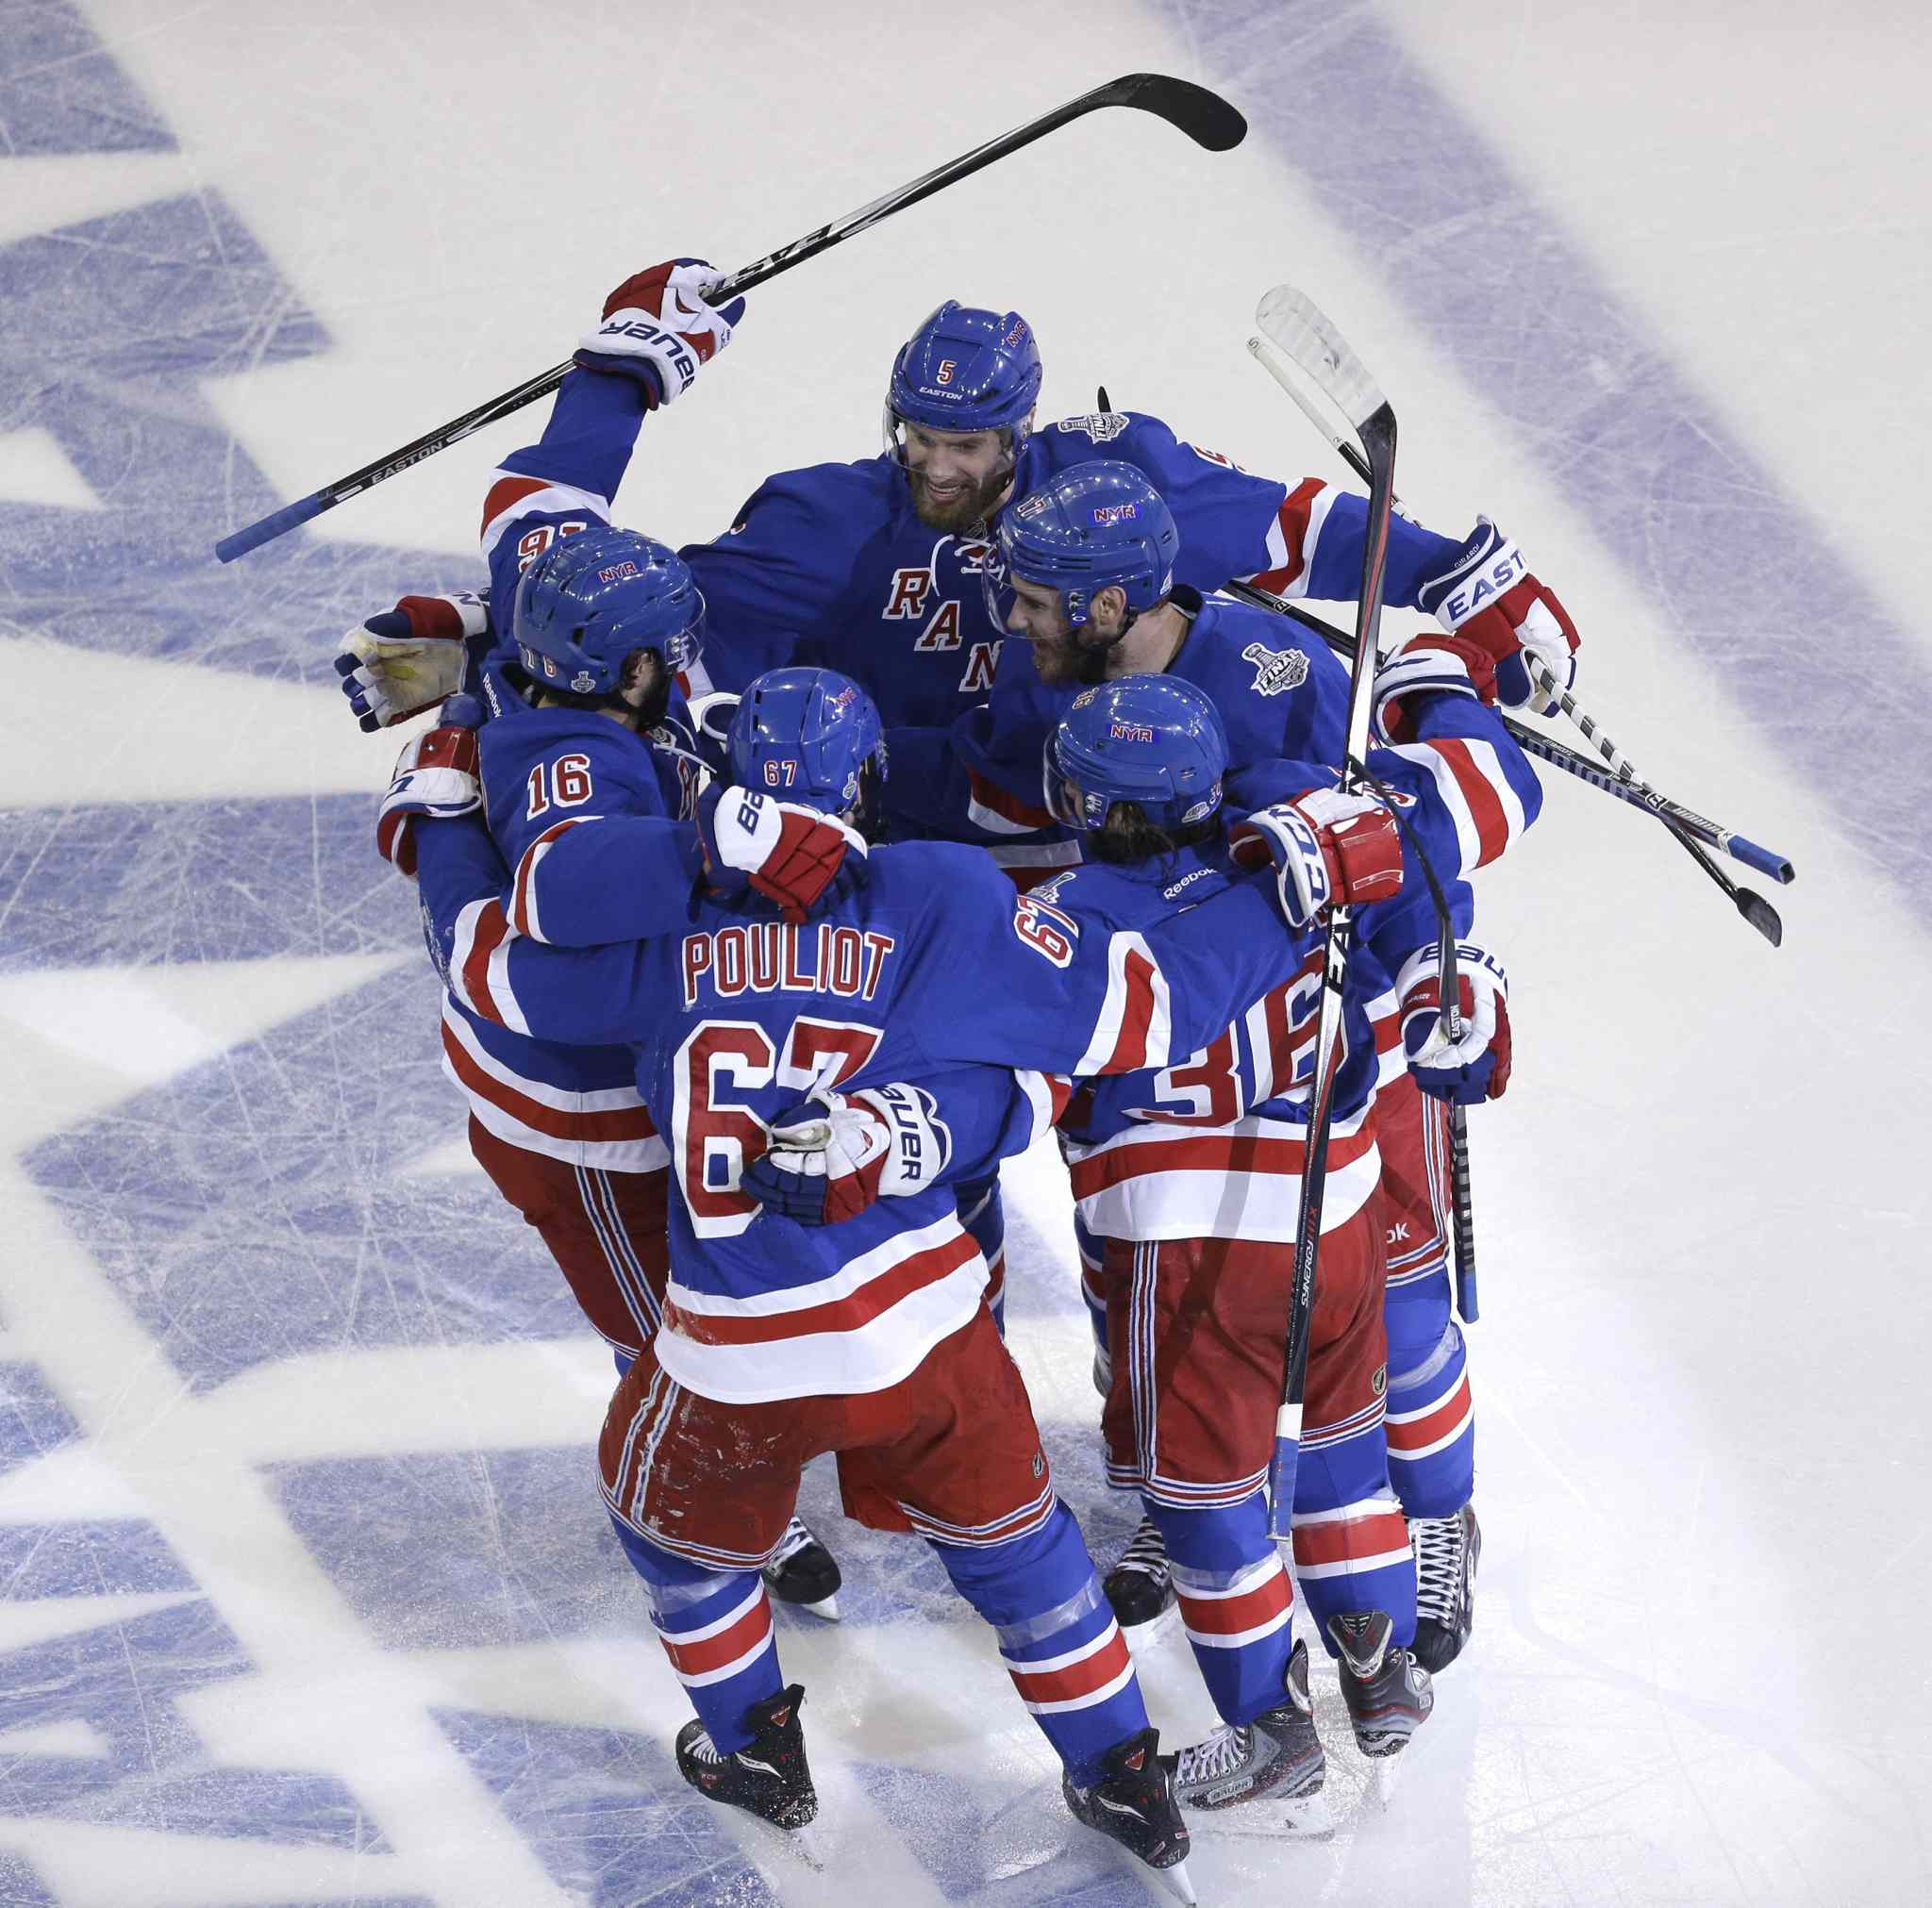 New York Rangers' left wing Benoit Pouliot (67) celebrates with teammates after scoring a first-period goal during Game 4 against the Los Angeles Kings on Wednesday.